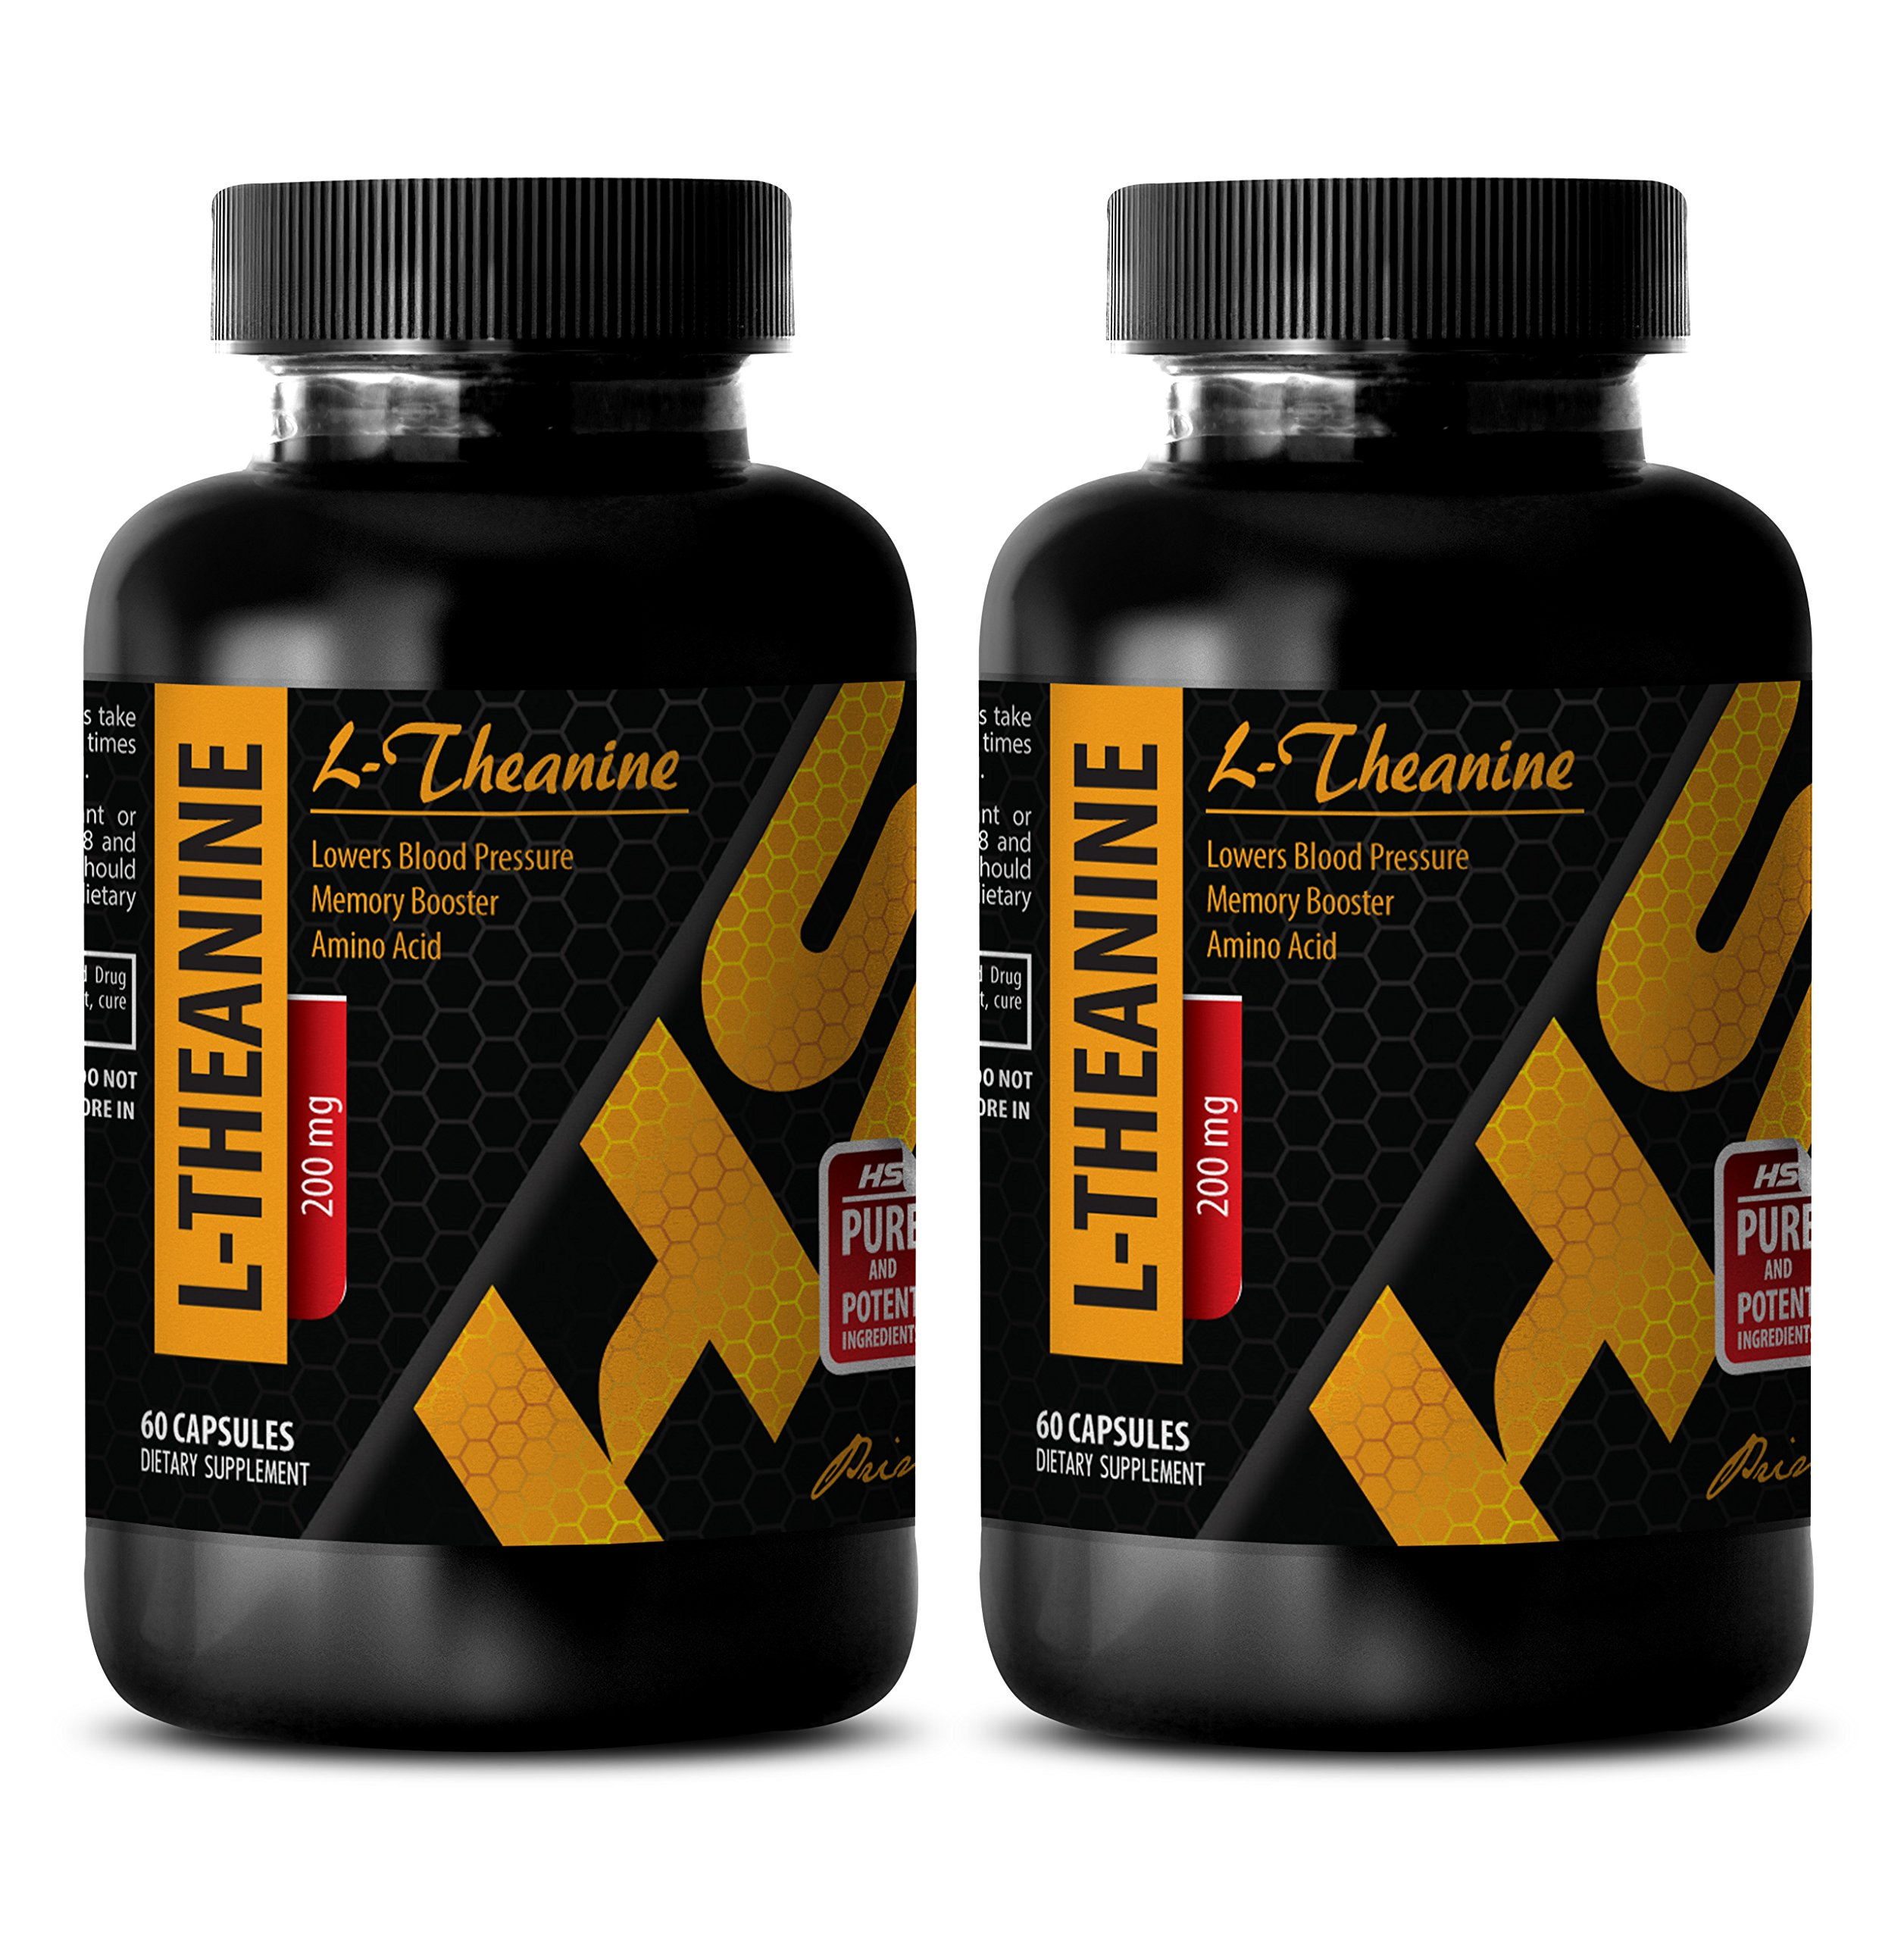 Weight management for women - L-Theanine 200MG - Theanine bulk - 2 Bottle (120 Capsules) by HS PRIME LLC (Image #1)